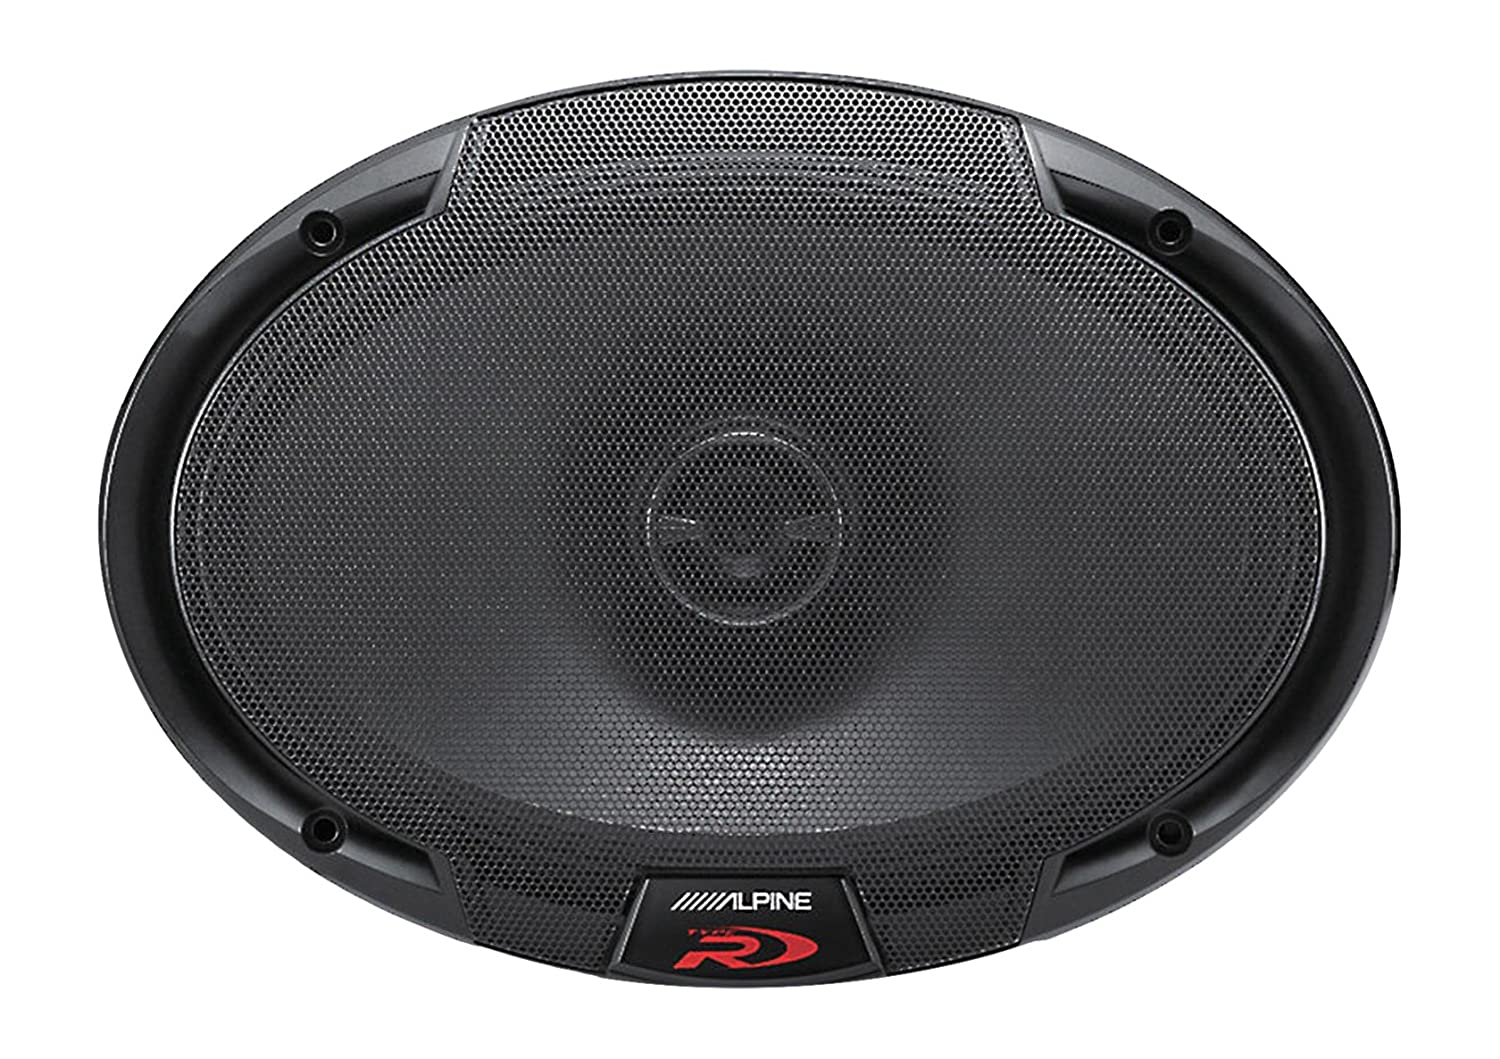 "ALPINE SPR-69 6X9"" 2-WAY COAXIAL SPEAKERS 300W PEAK / 100W RMS"